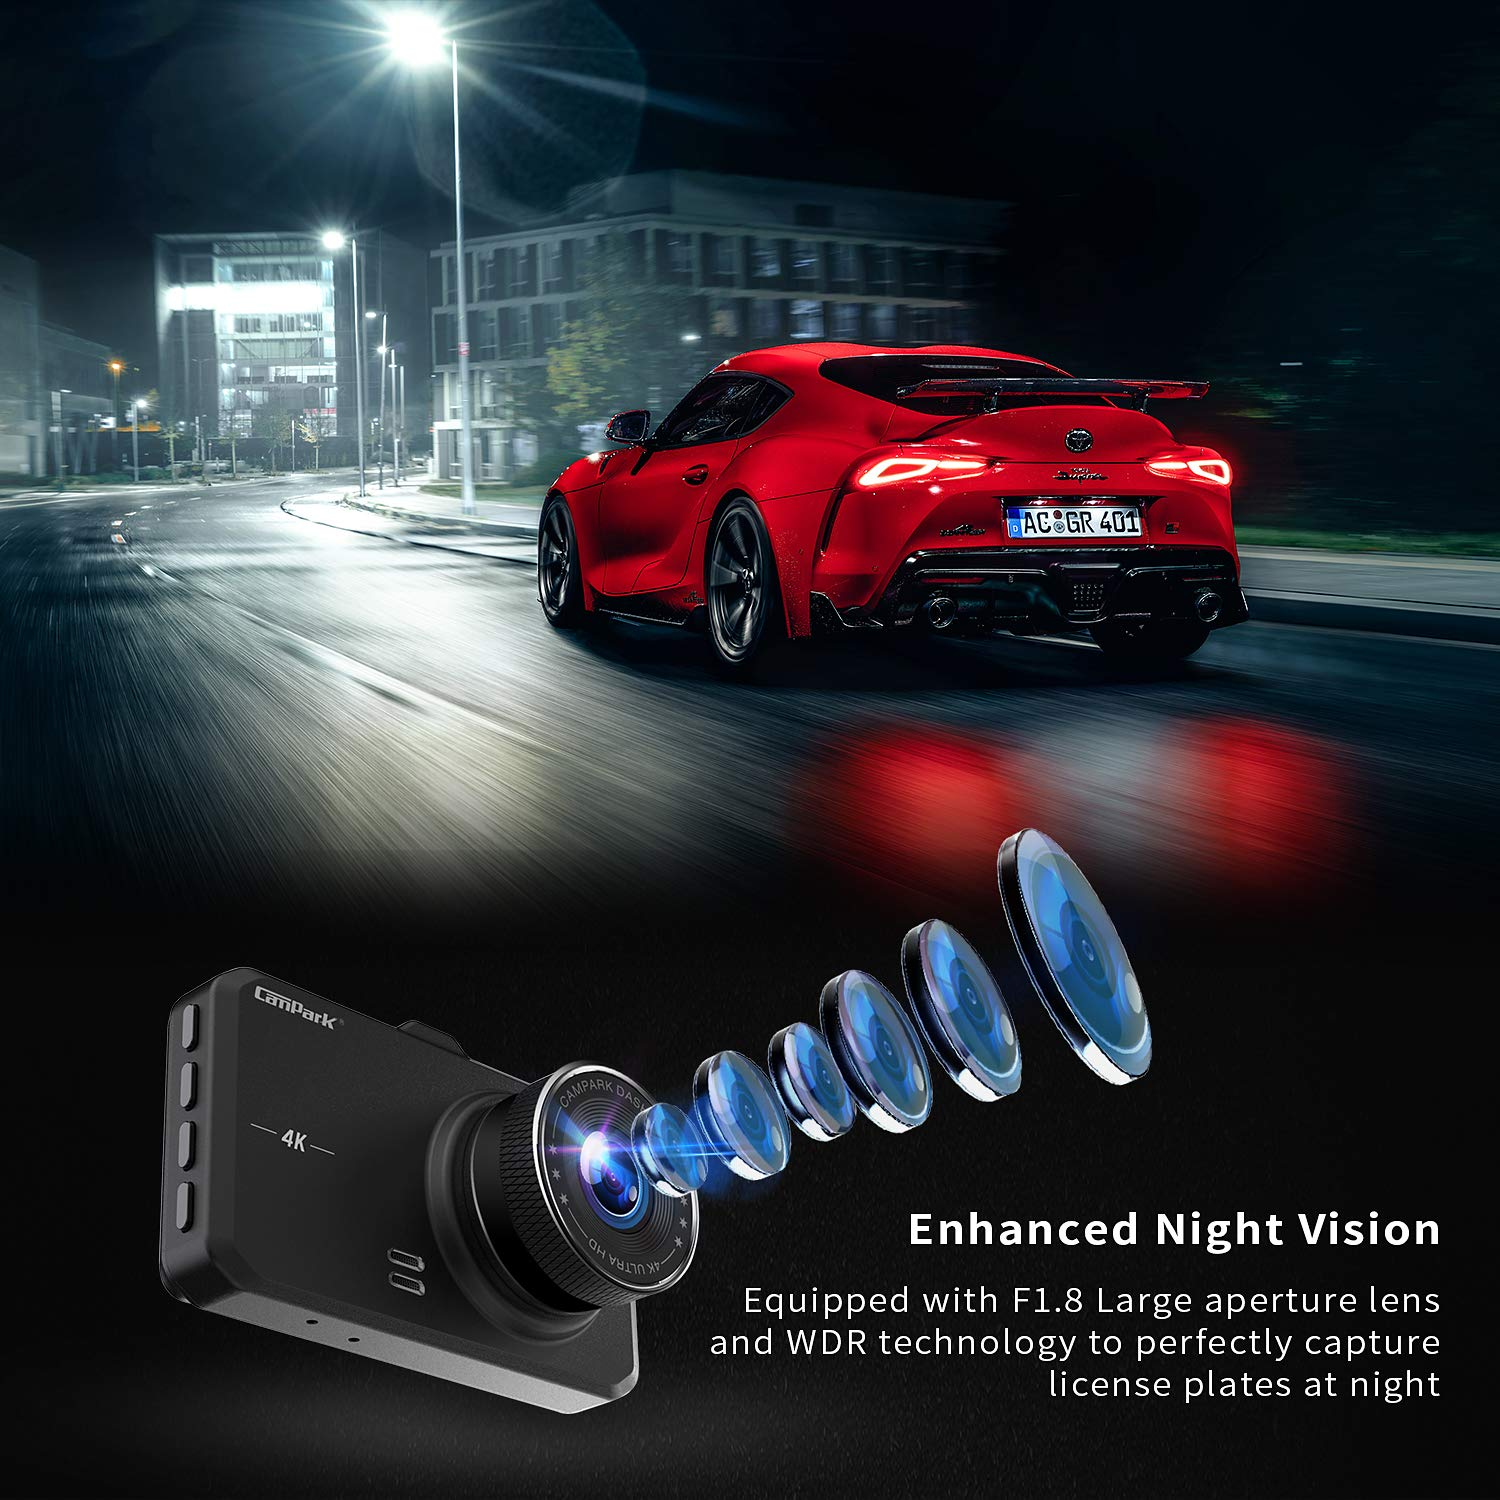 Campark Dash Cam 4K UHD DVR Driving Recorder Camera for Cars Dashboard with 3 LCD 170/°Wide Angle Night Vision G-Sensor Parking Monitor WDR Motion Detection